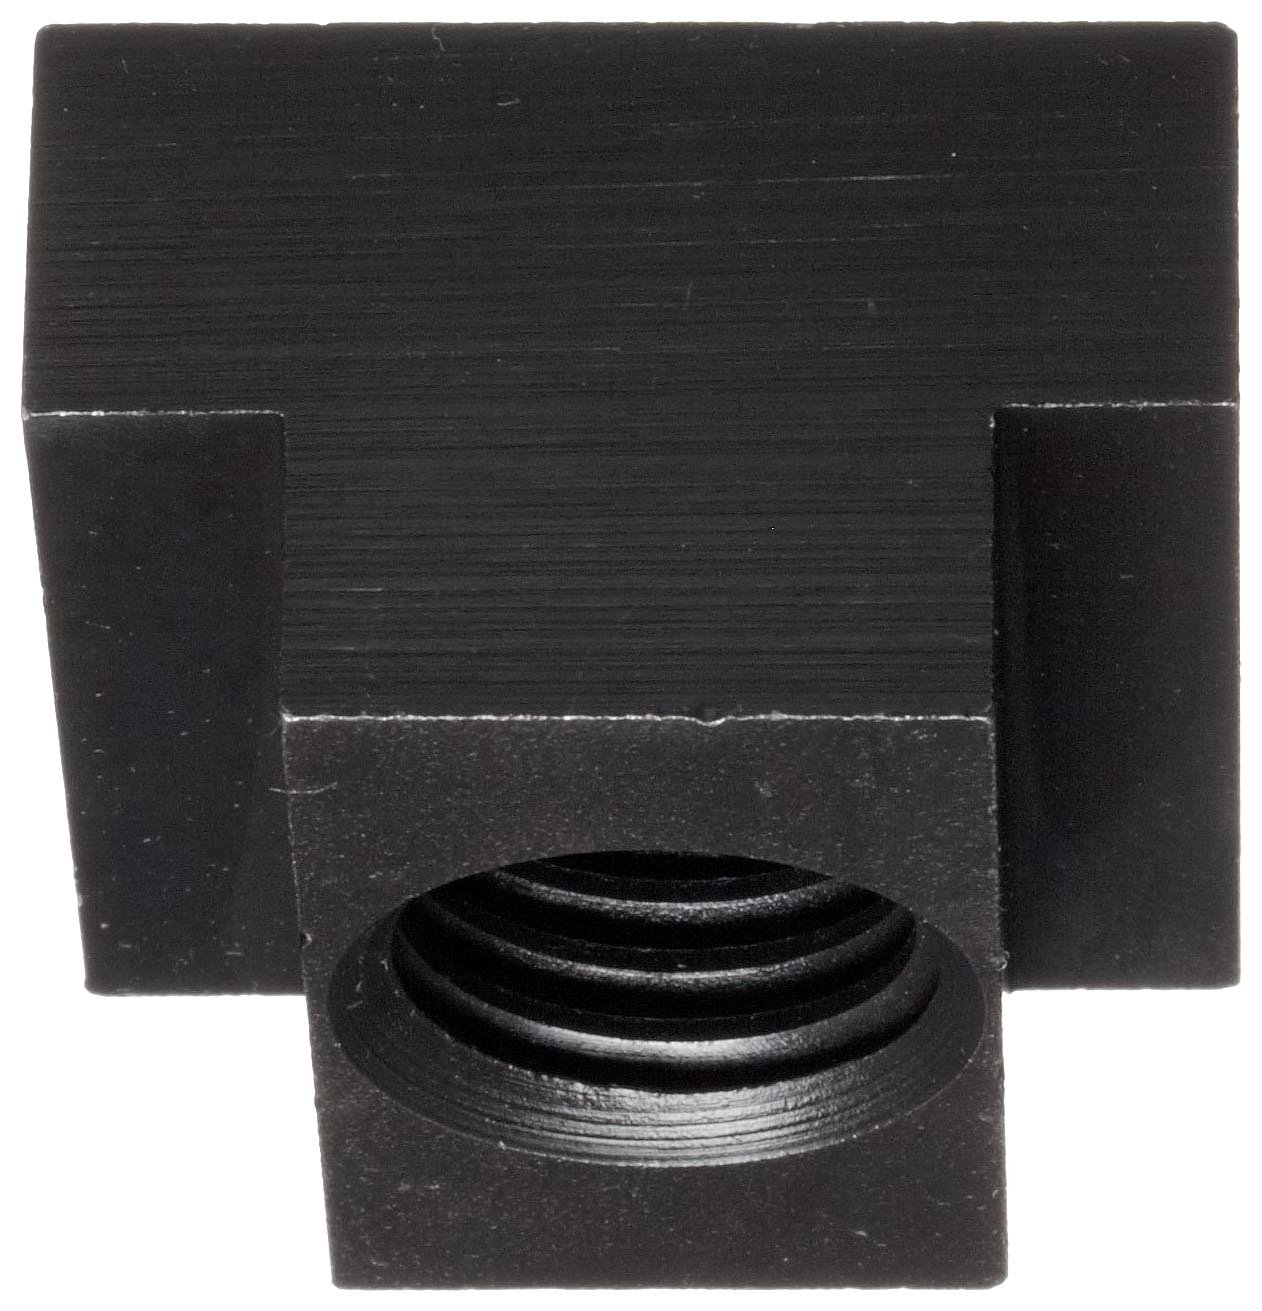 19mm Height Slot Depth Steel T-Slot Nut Class 6H M16 Threads Right Hand Threads Black Oxide Finish Made in US